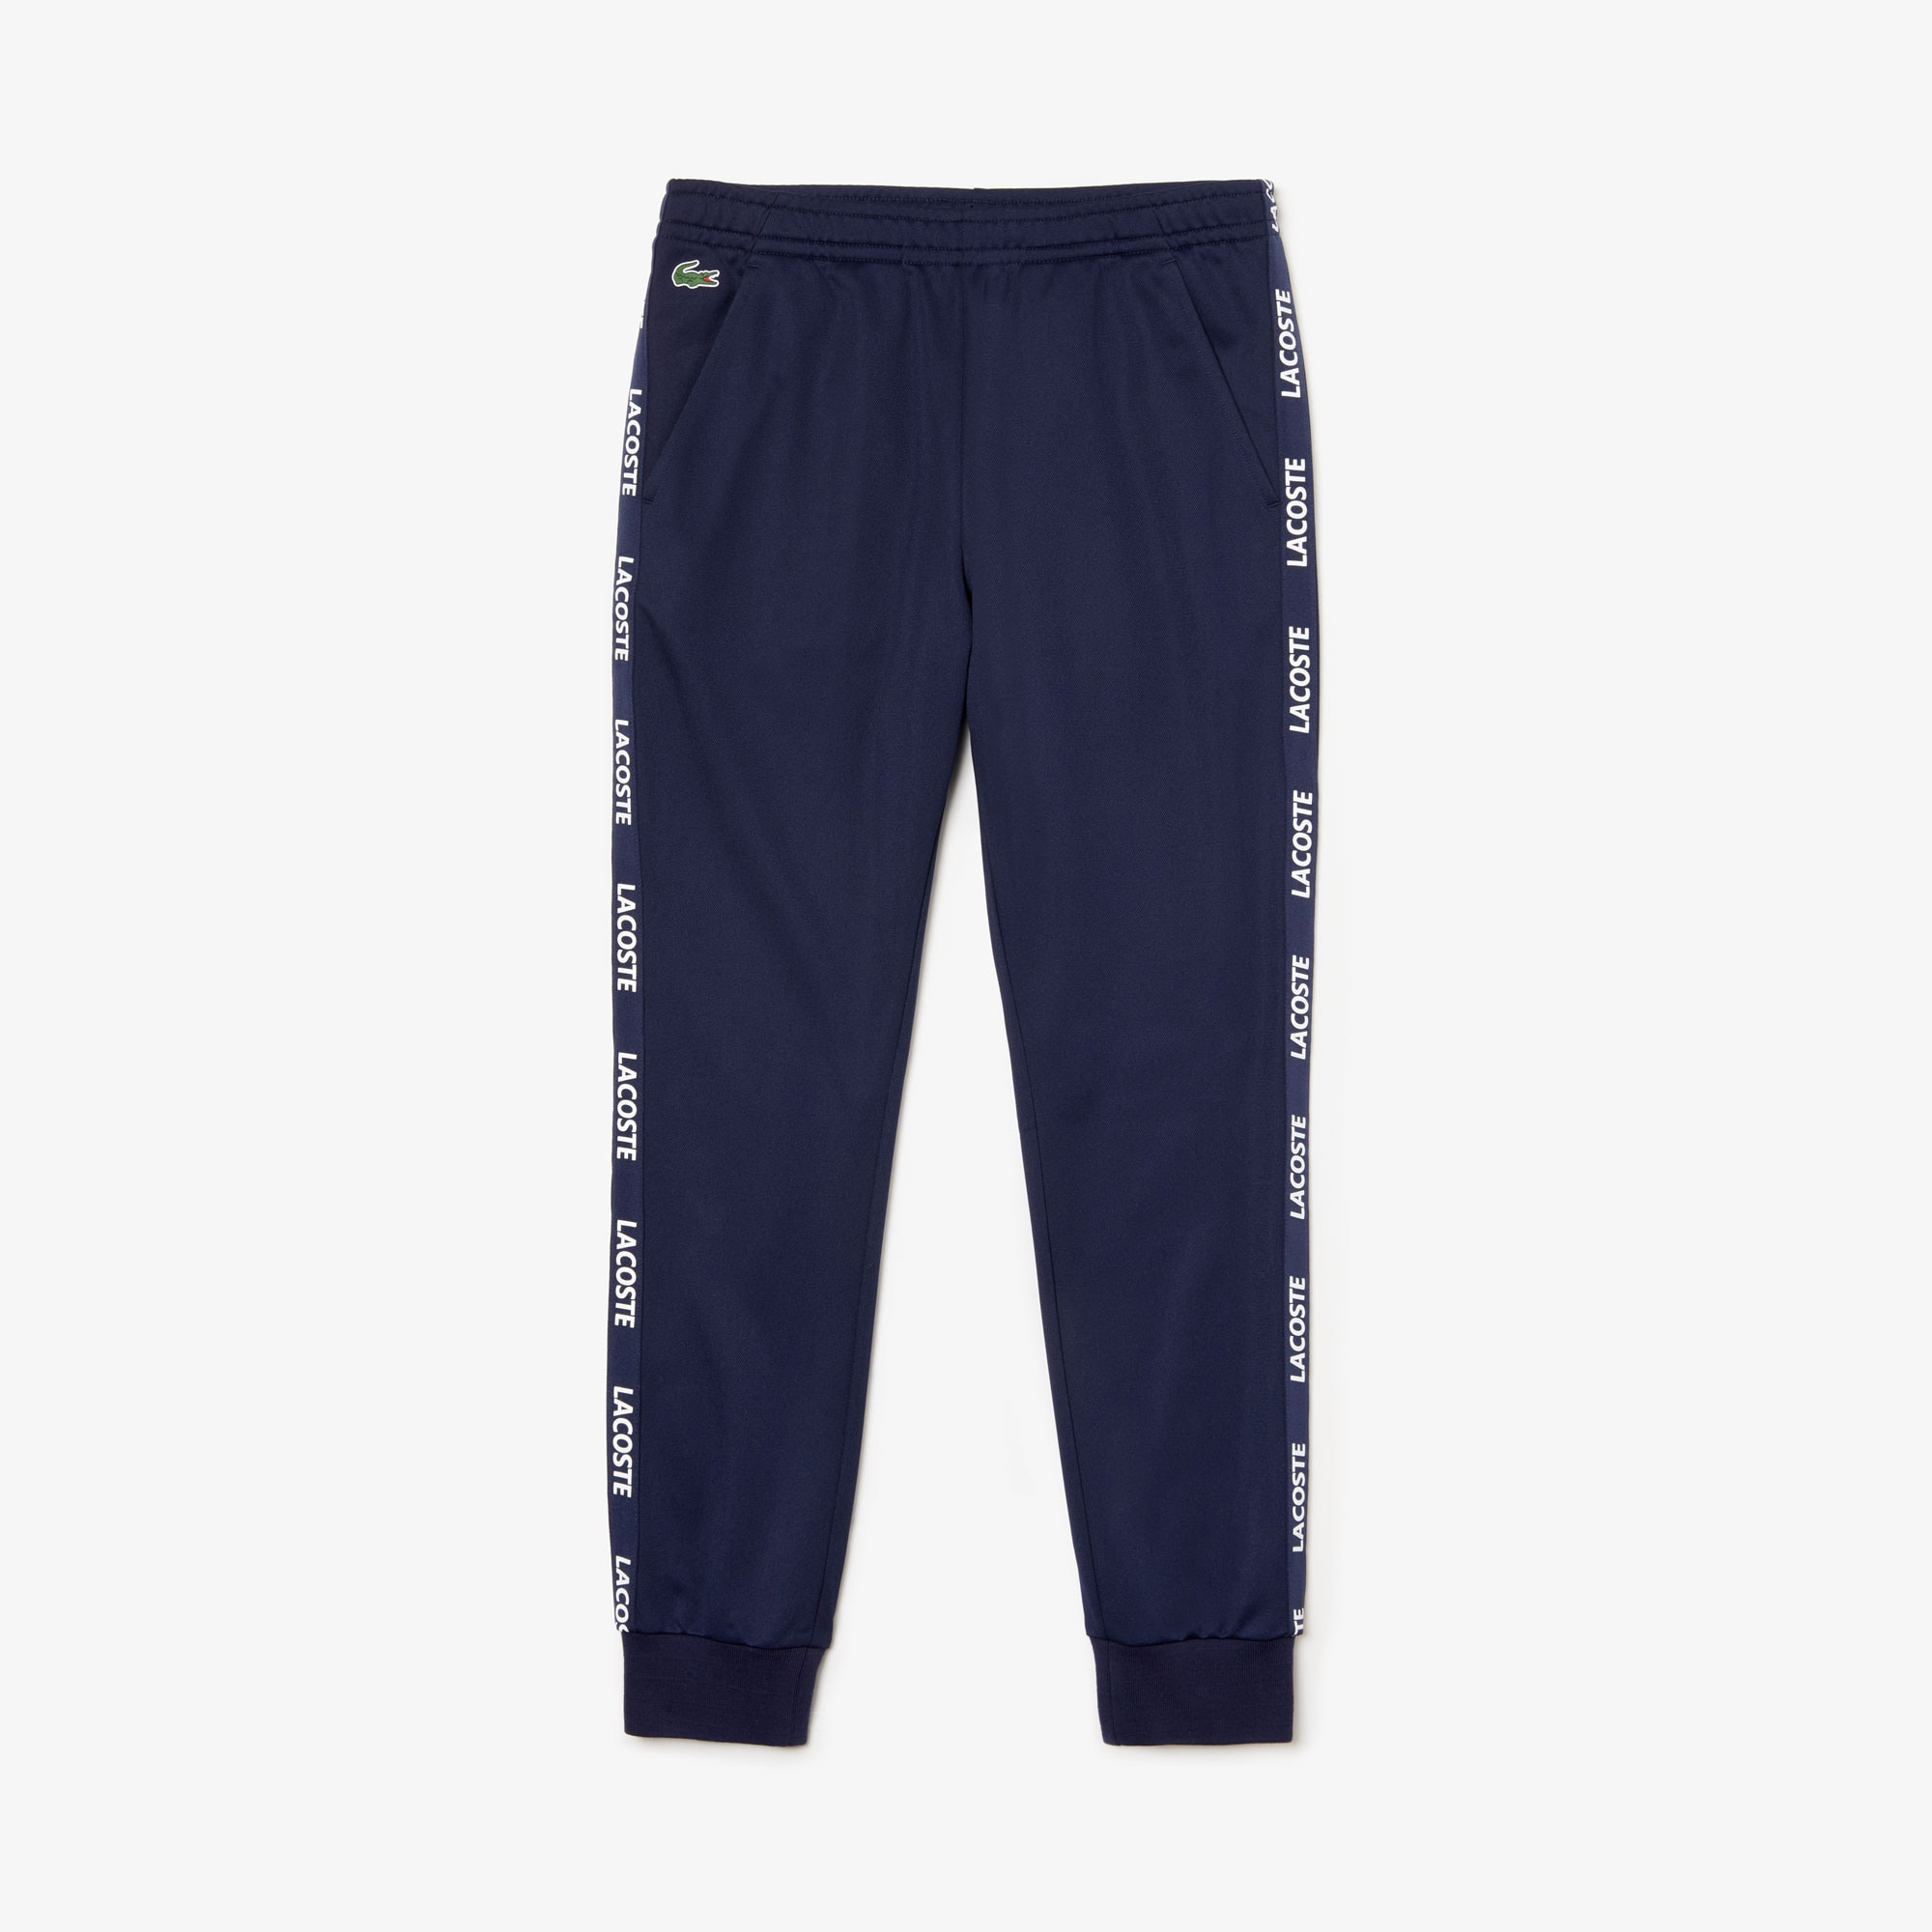 Men's Lacoste SPORT Signature Bands Piqué Sweatpants